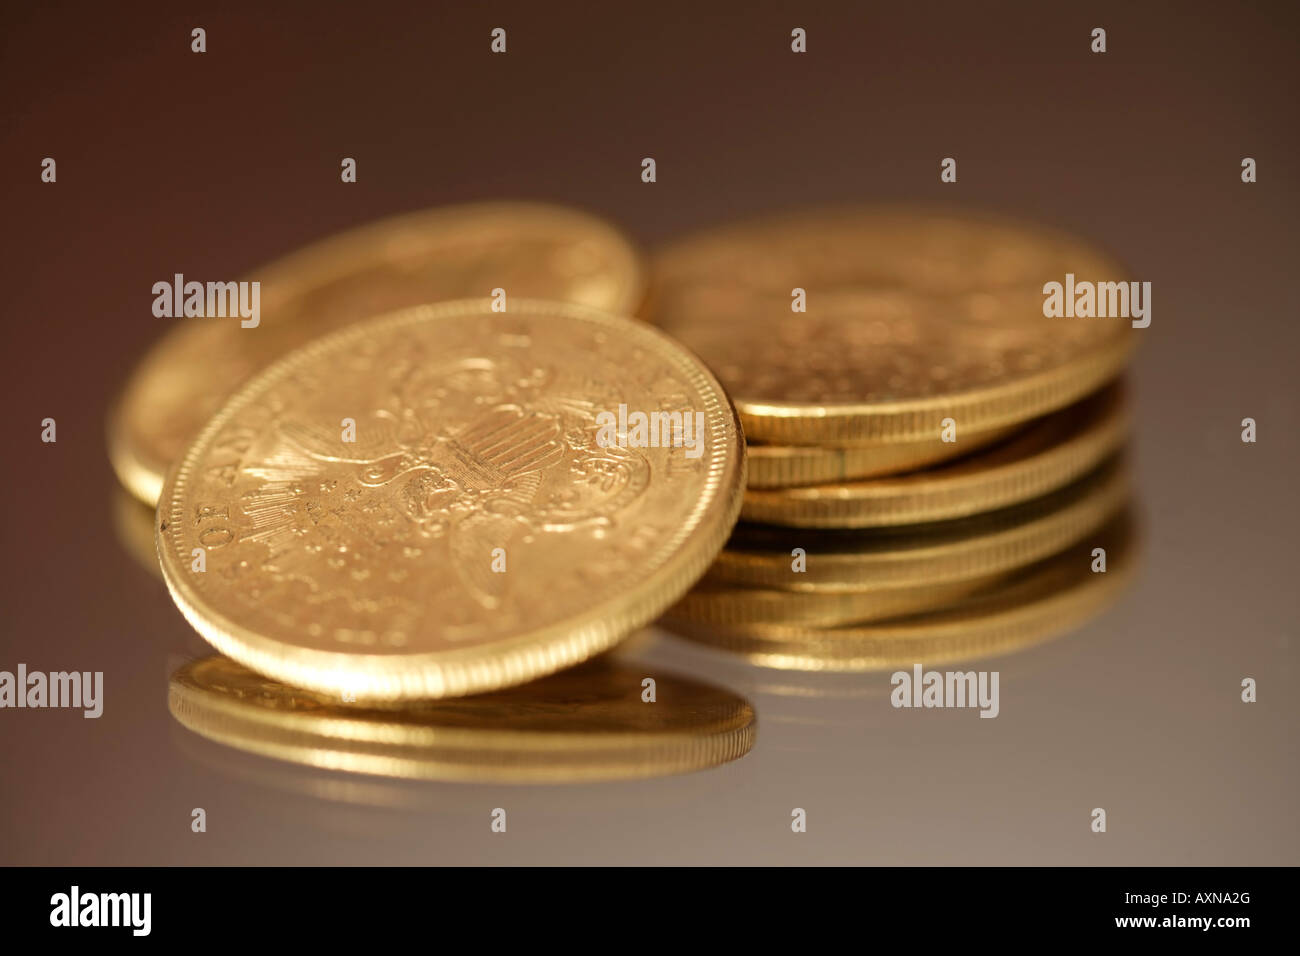 American 25 Dollar Gold Coins Close Up Stock Photo 16884471